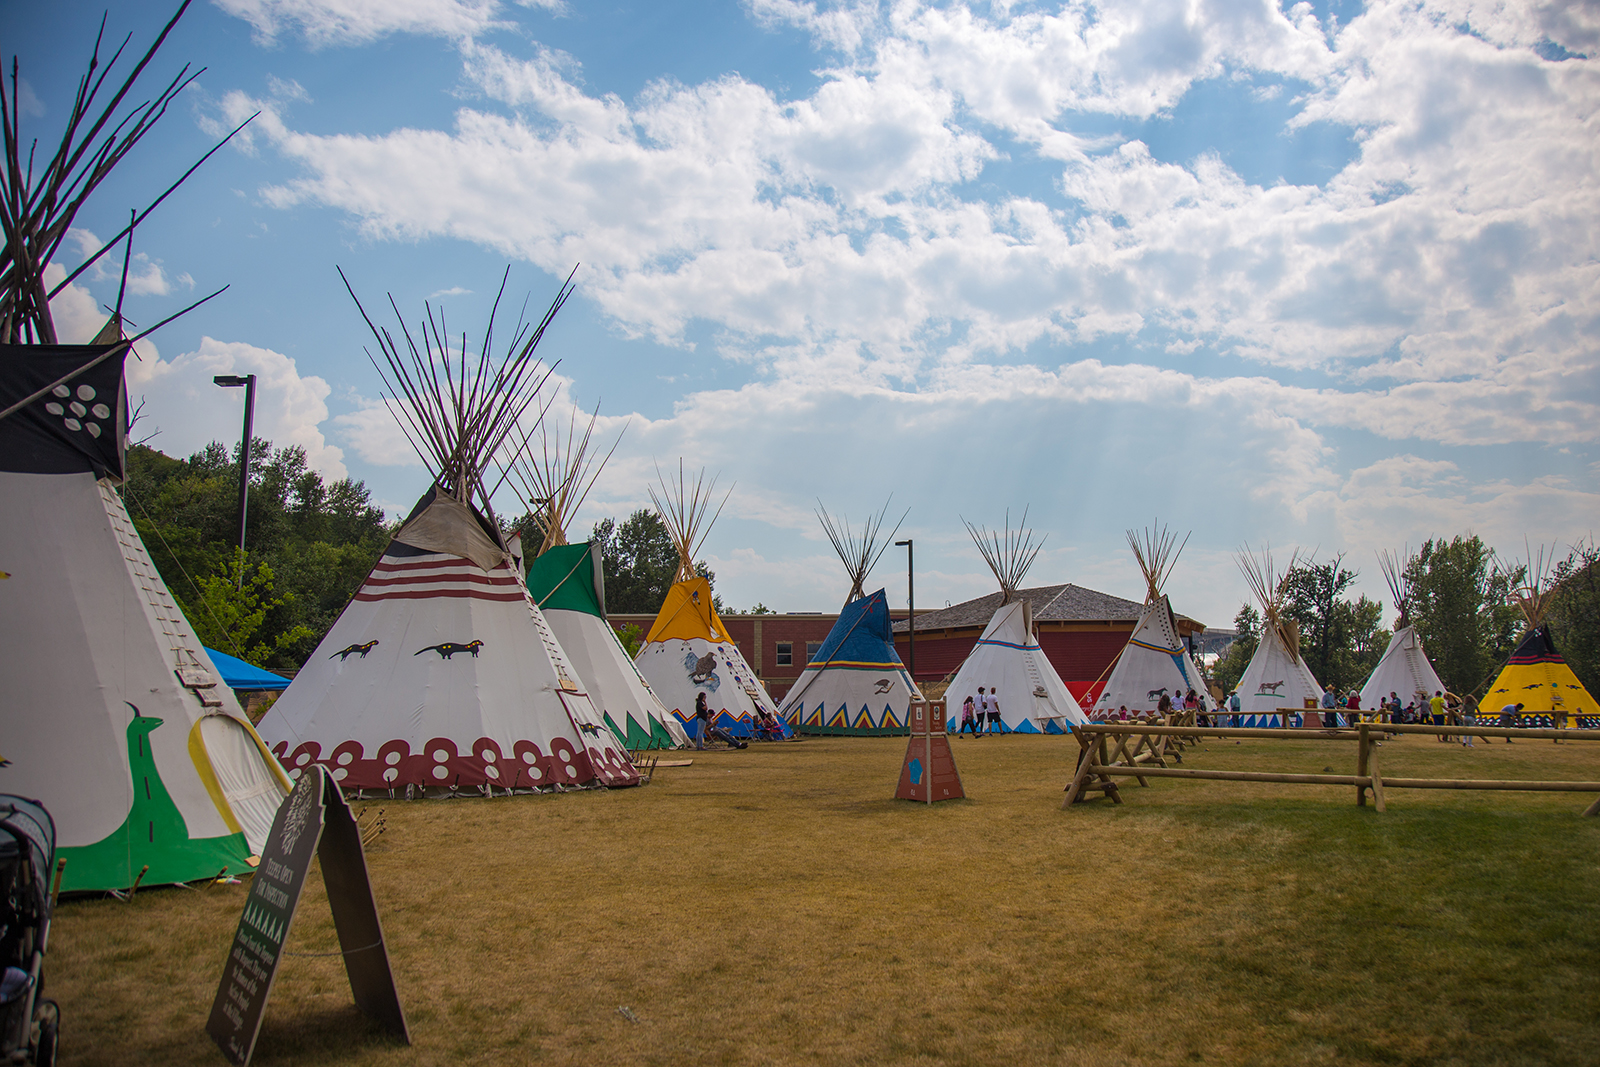 teepees in the Indian Village at the Calgary Stampede